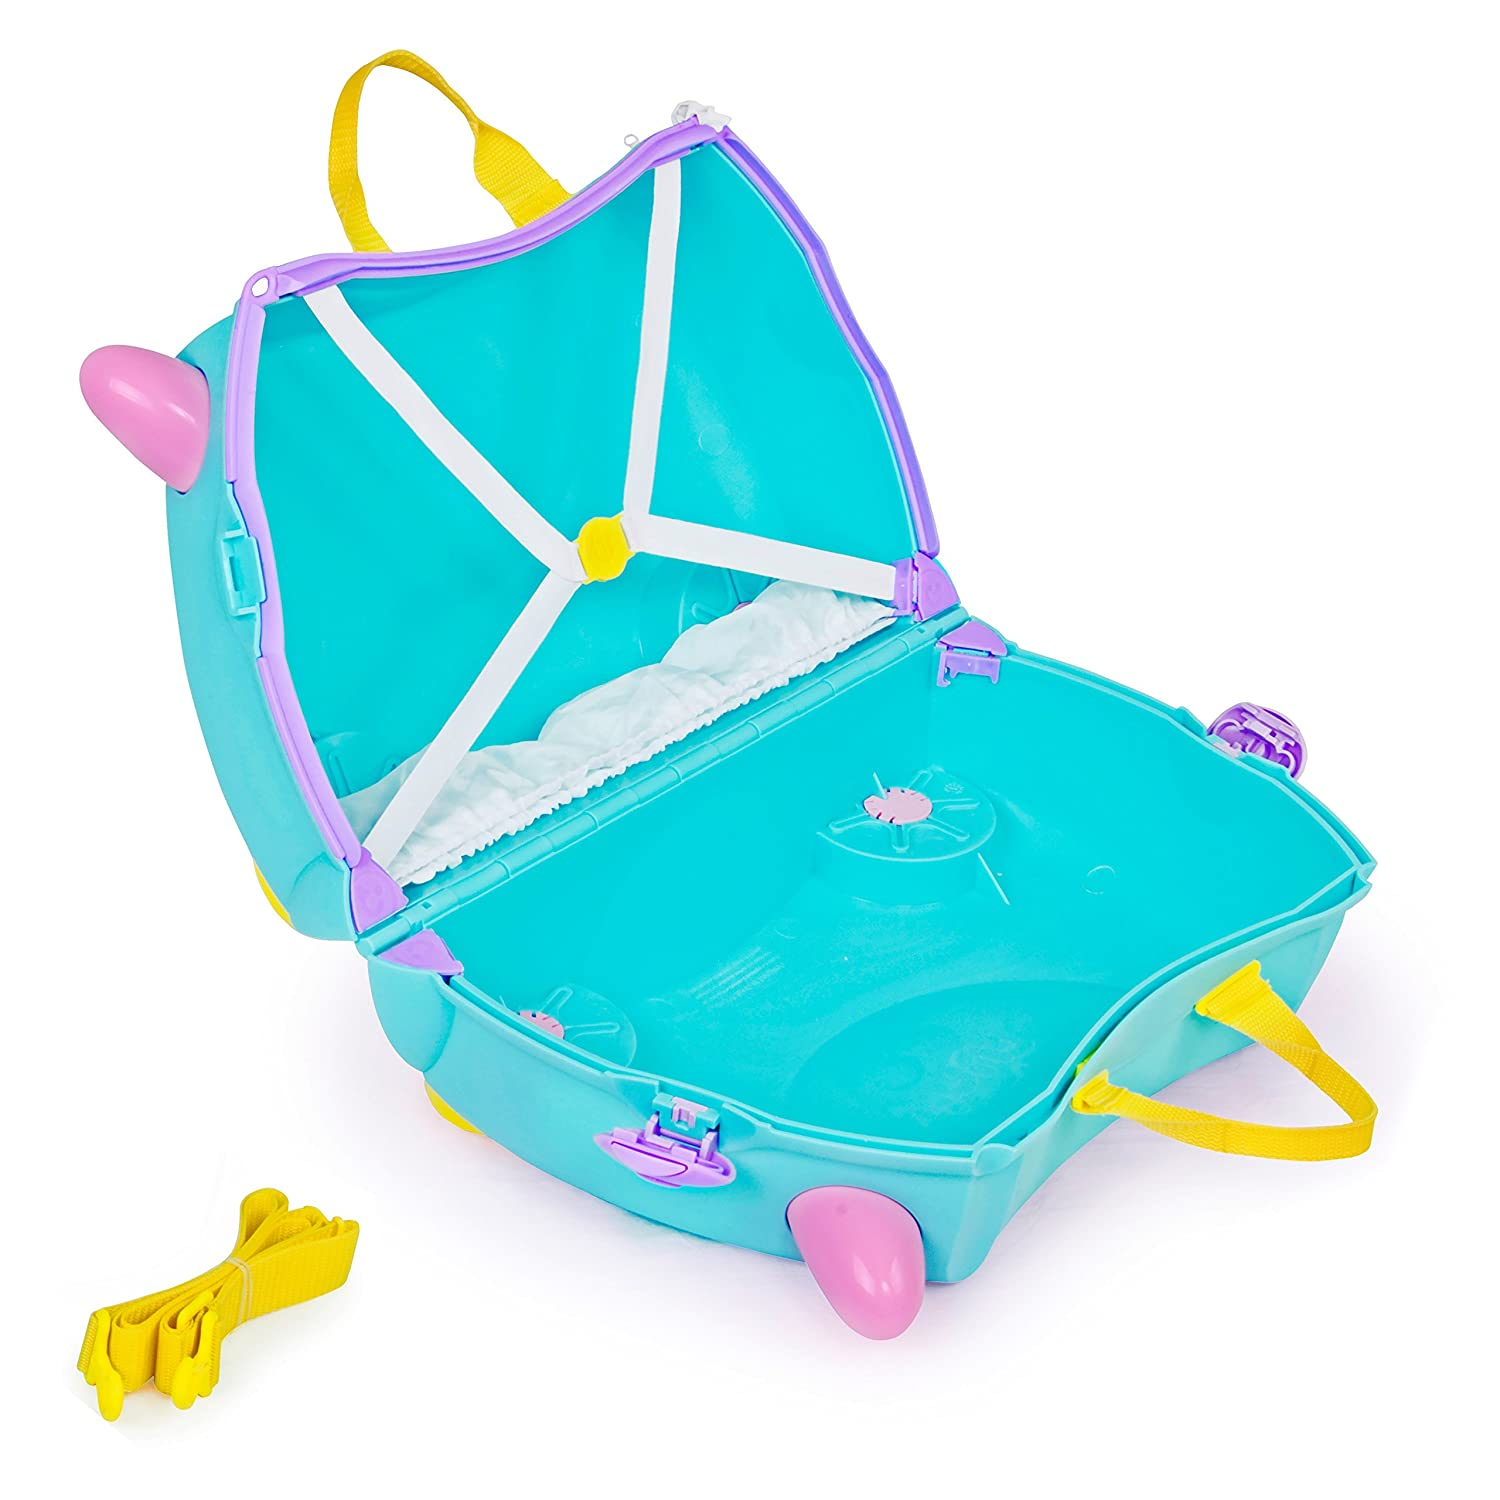 Trunki Original Kids Ride-On Suitcase and Carry-On Luggage